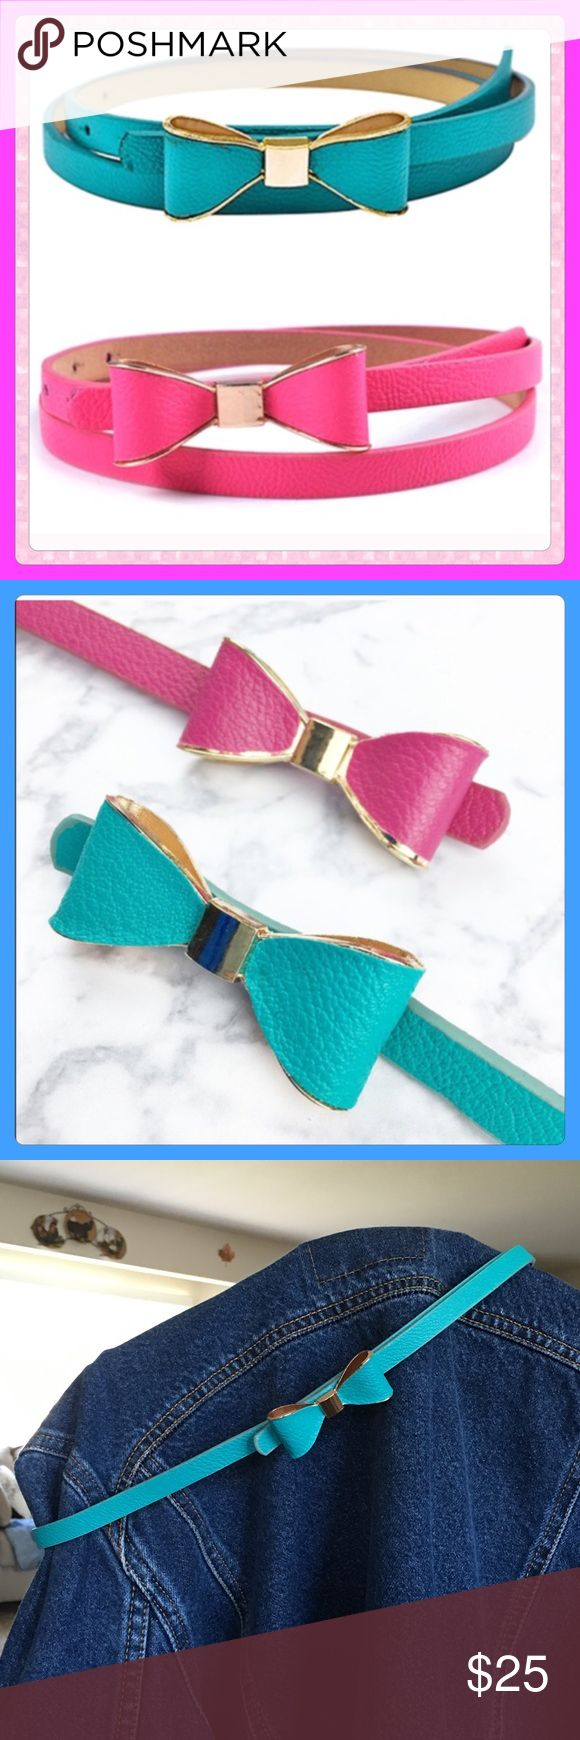 "NWT Blue Vegan Leather Thin Bow Belts! ✨NWT Blue Vegan Leather Thin Bow Belts! This belt would be really cute with jeans as well as other attire! Add a Bit of Flare to your Wardrobe! The Bow is made of metal so it will keep its shape! I have 3 of these Blue Belts! Get One before their gone!! Measurements: 40"" from tip to tip. 7 holes ranging from 30-35"".✨ Accessories Belts"